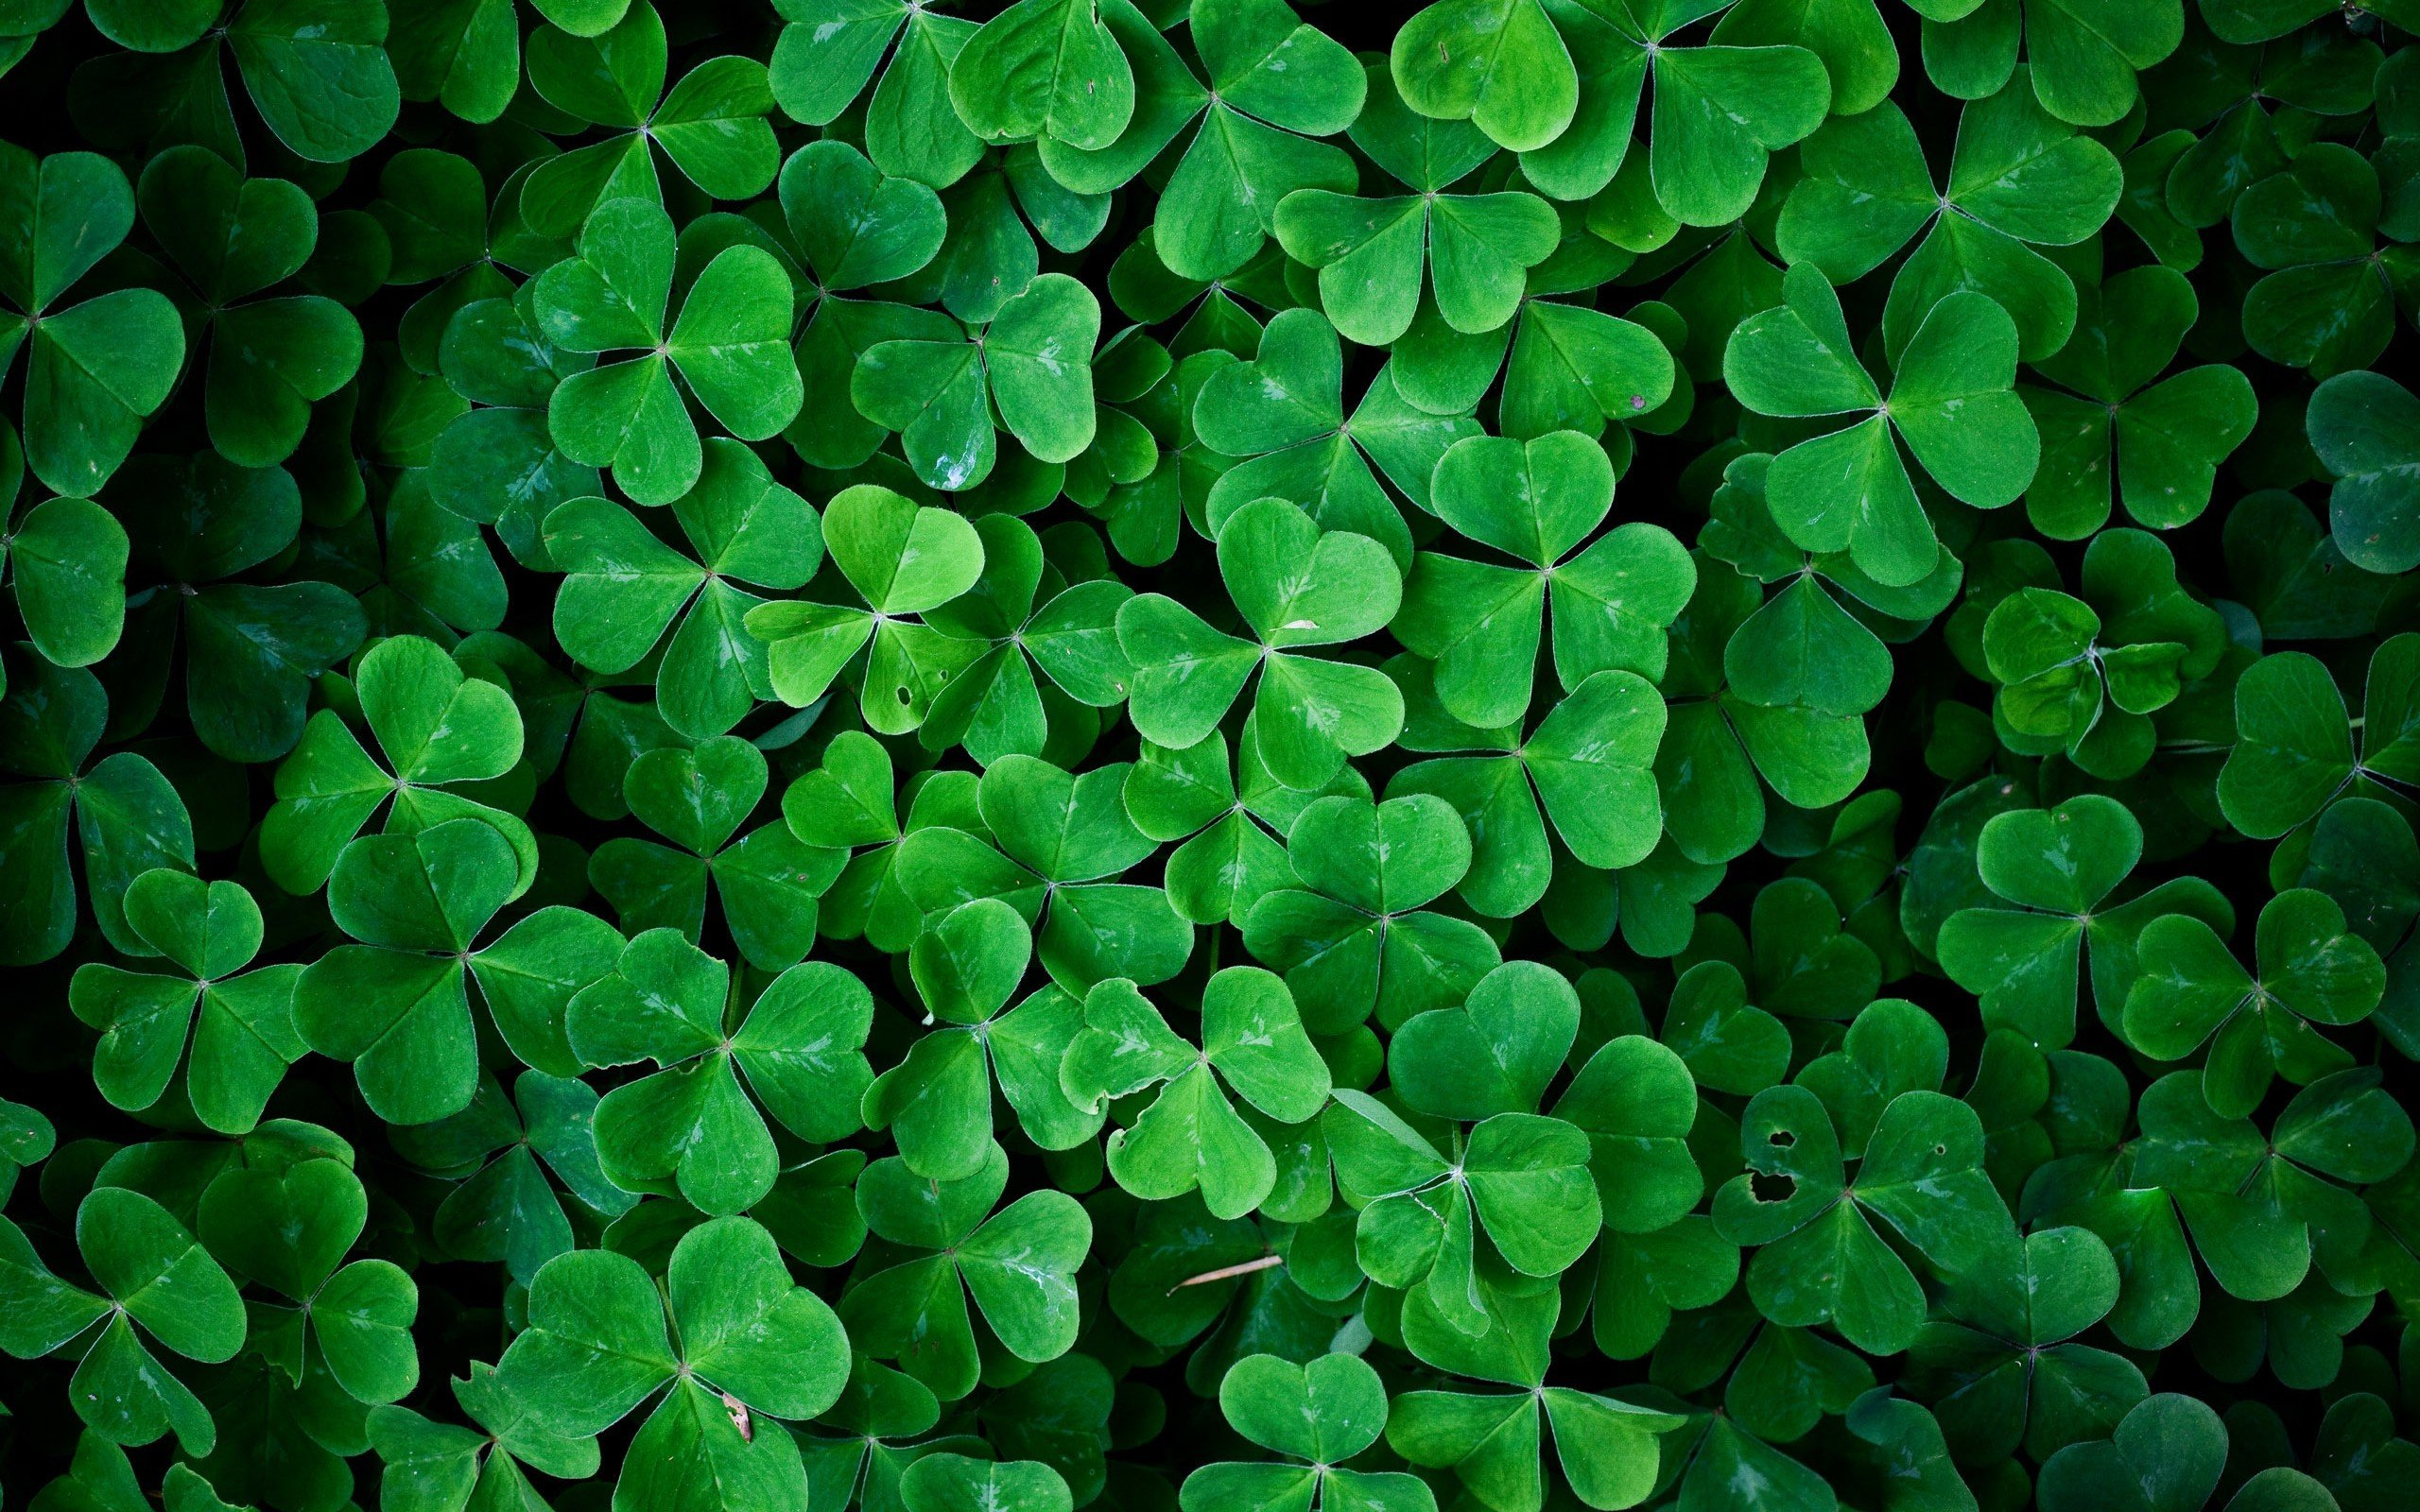 46 Irish Clover Wallpaper On Wallpapersafari